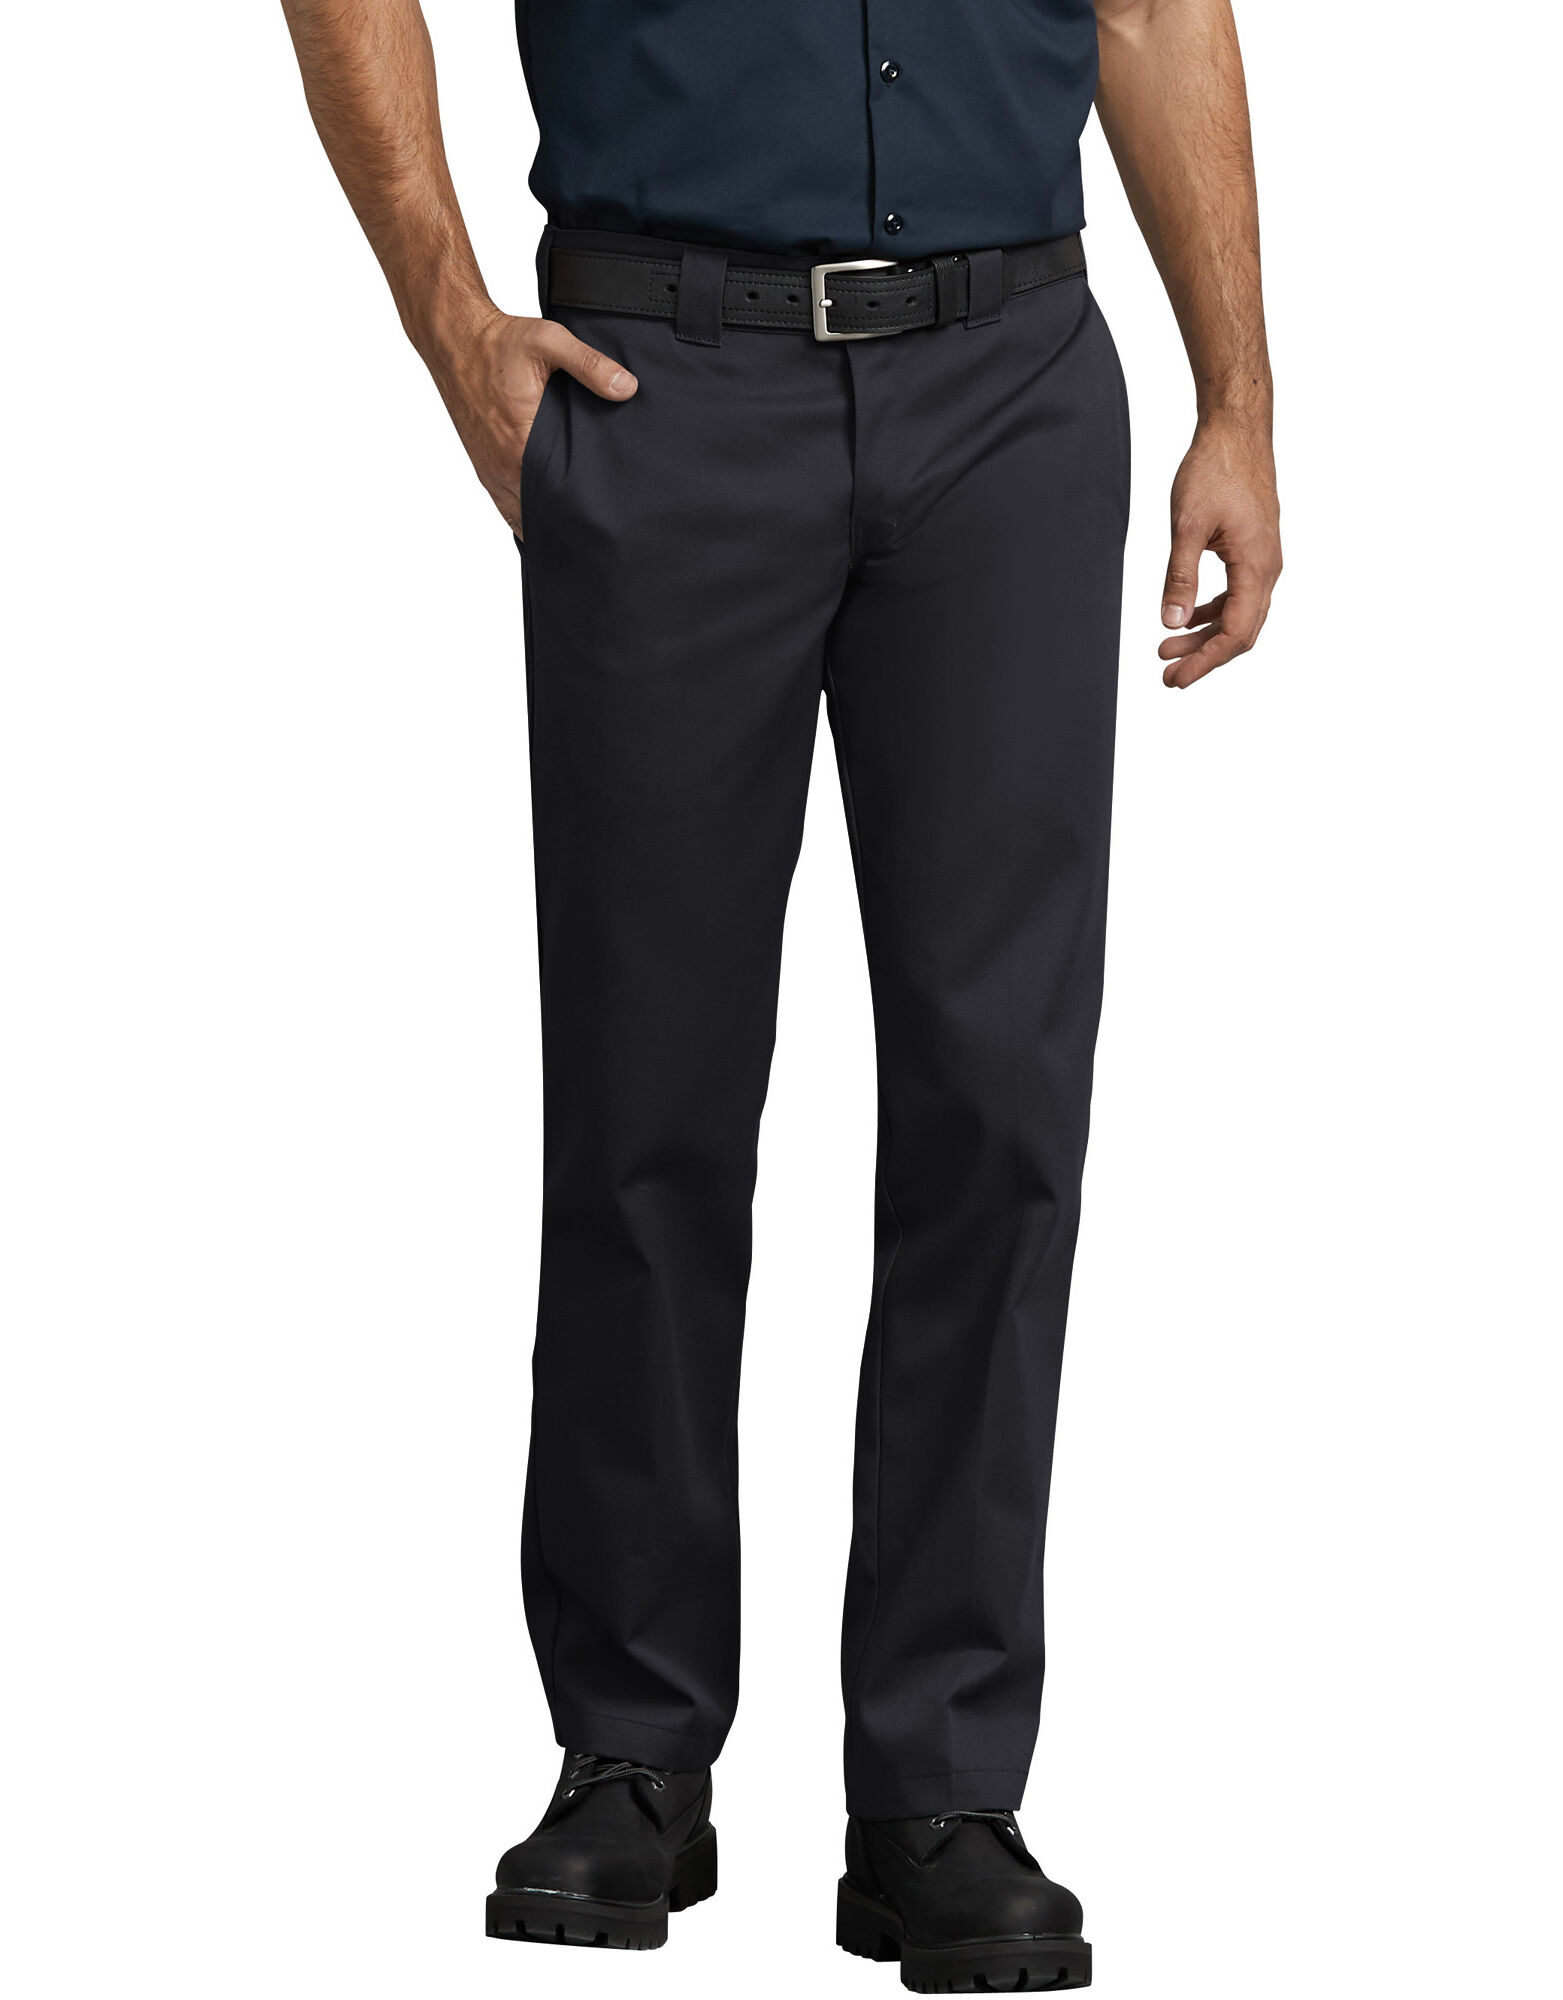 The Topo Design Work Pants are a durable canvas similar to Carhartt work pants but with a slimmer fit. They have other durable pants with similar fits made different materials than canvas too, worth checking out.